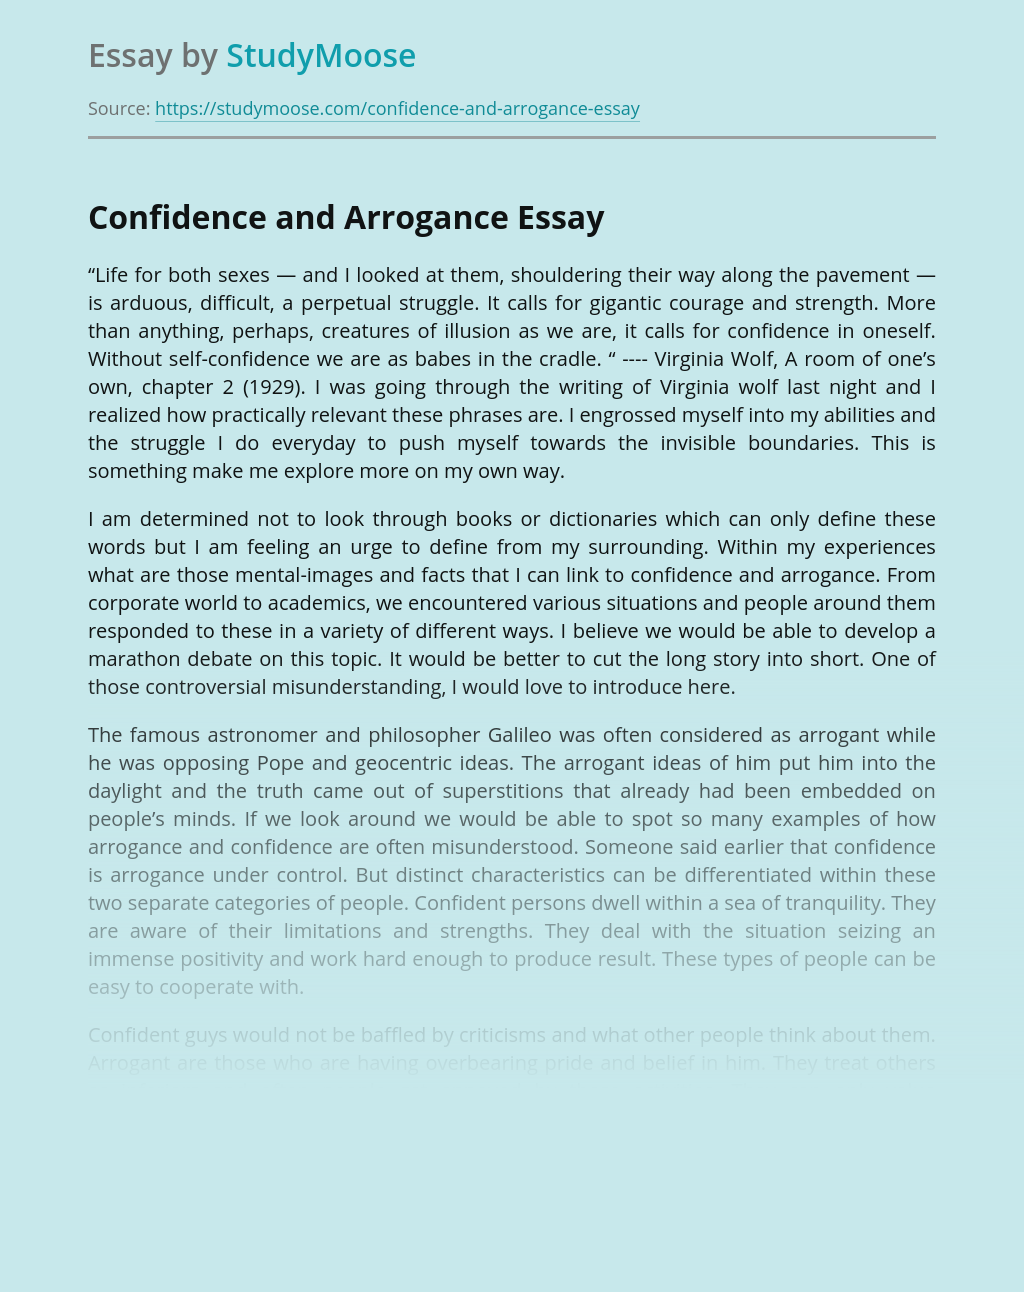 Confidence and Arrogance